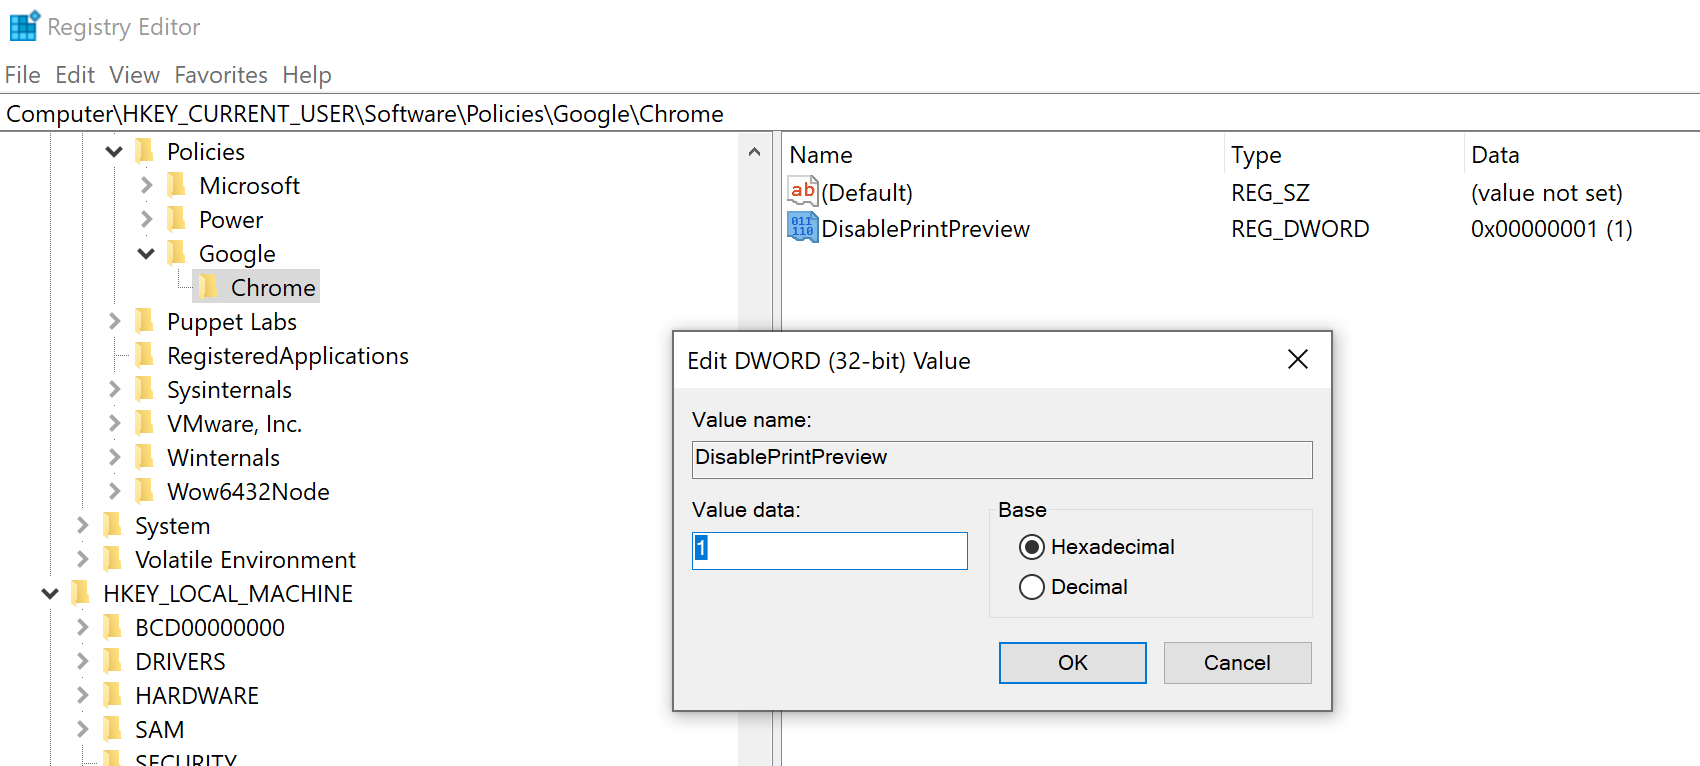 Add DisablePrintPreview in Computer\HKEY_CURRENT_USER\SOFTWARE\Policies\Google\Chrome